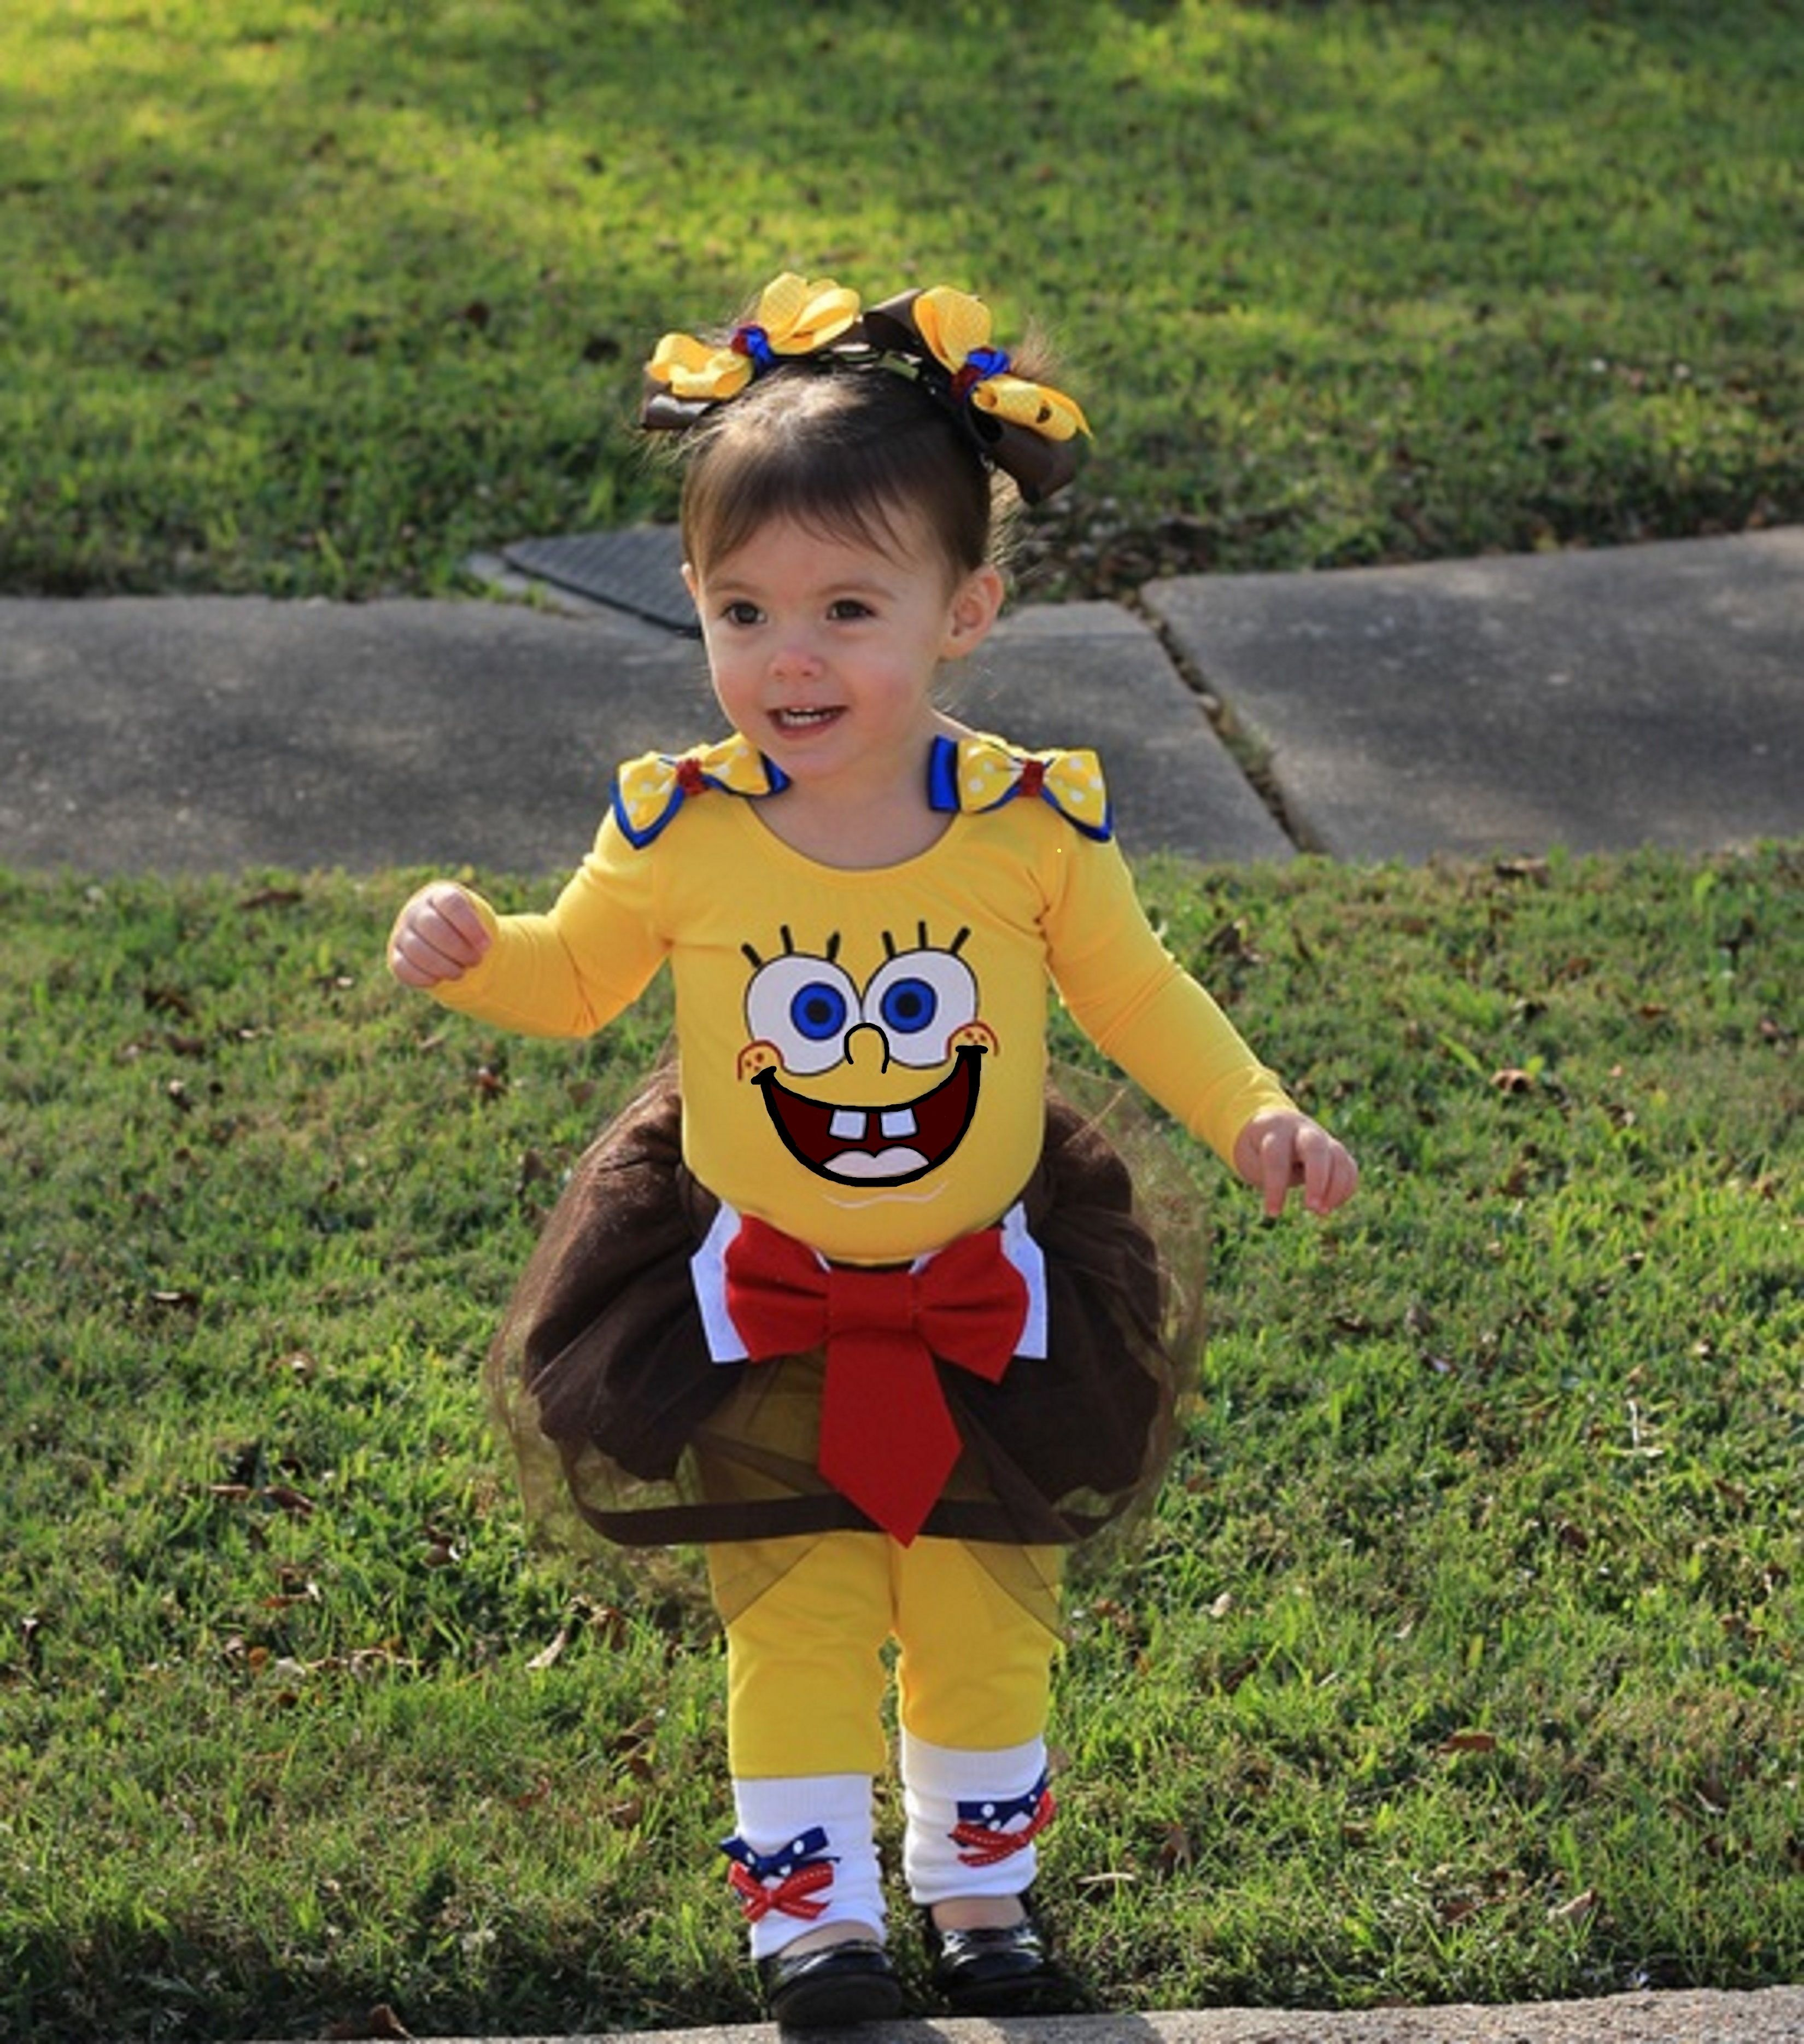 $150 for full handmade custom costume including accessories of your choice. Includes hair accessories and leg warmers. Shoes not included SPONGEBOB GIRLS ...  sc 1 st  Pinterest & $150 for full handmade custom costume including accessories of your ...